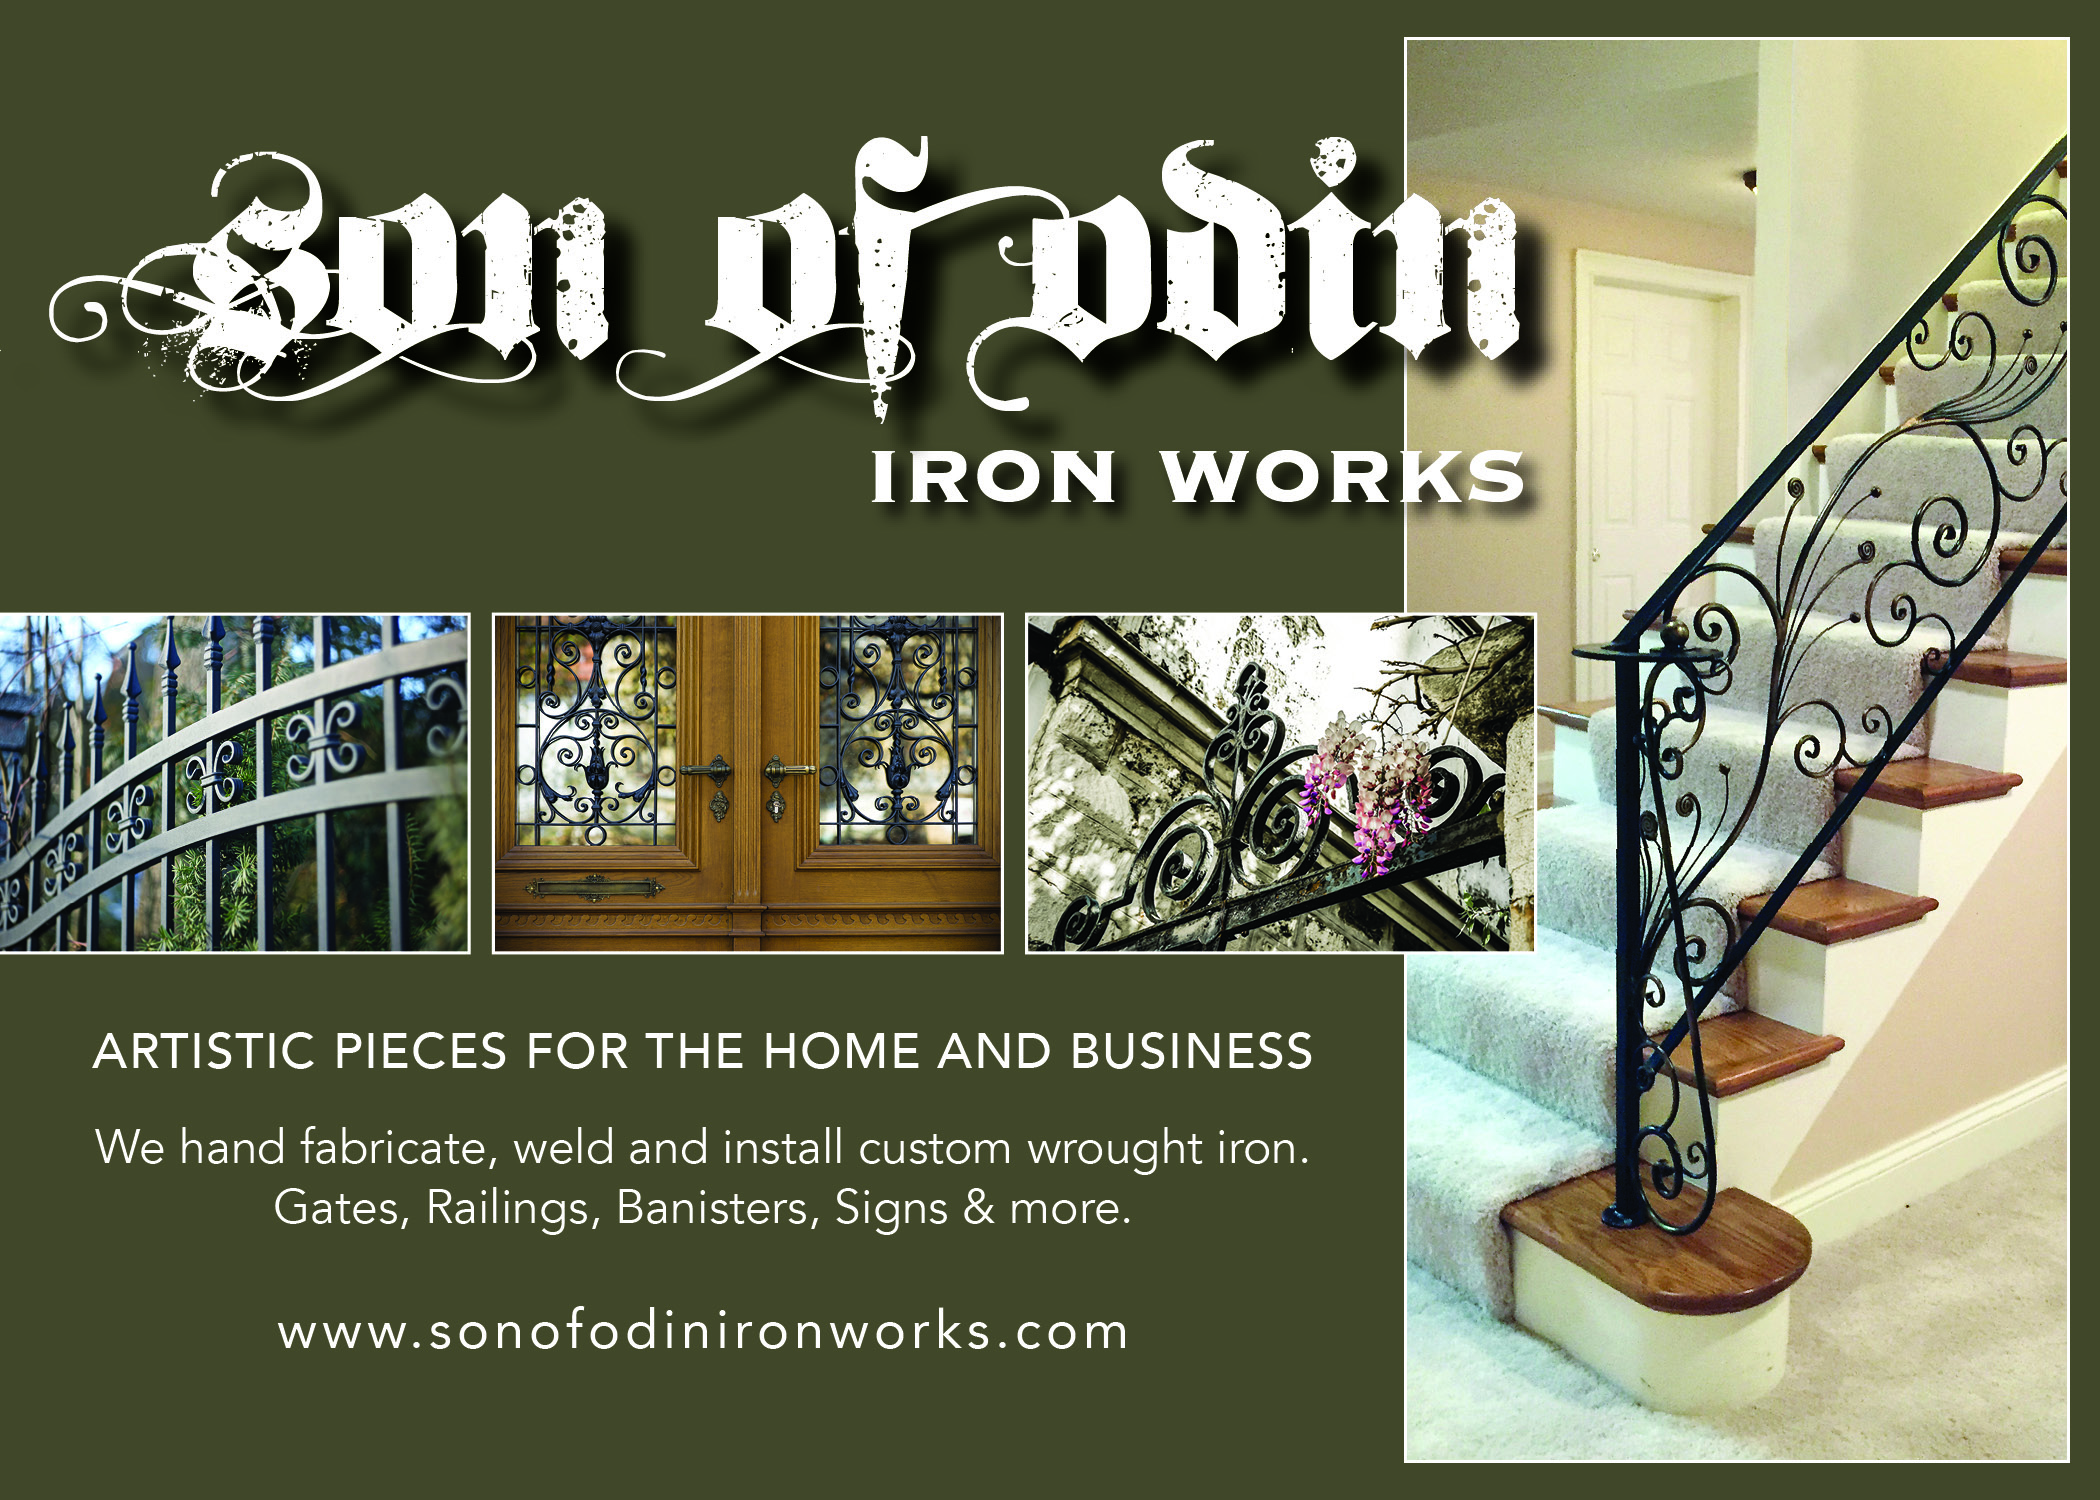 Son of Odin Iron Works